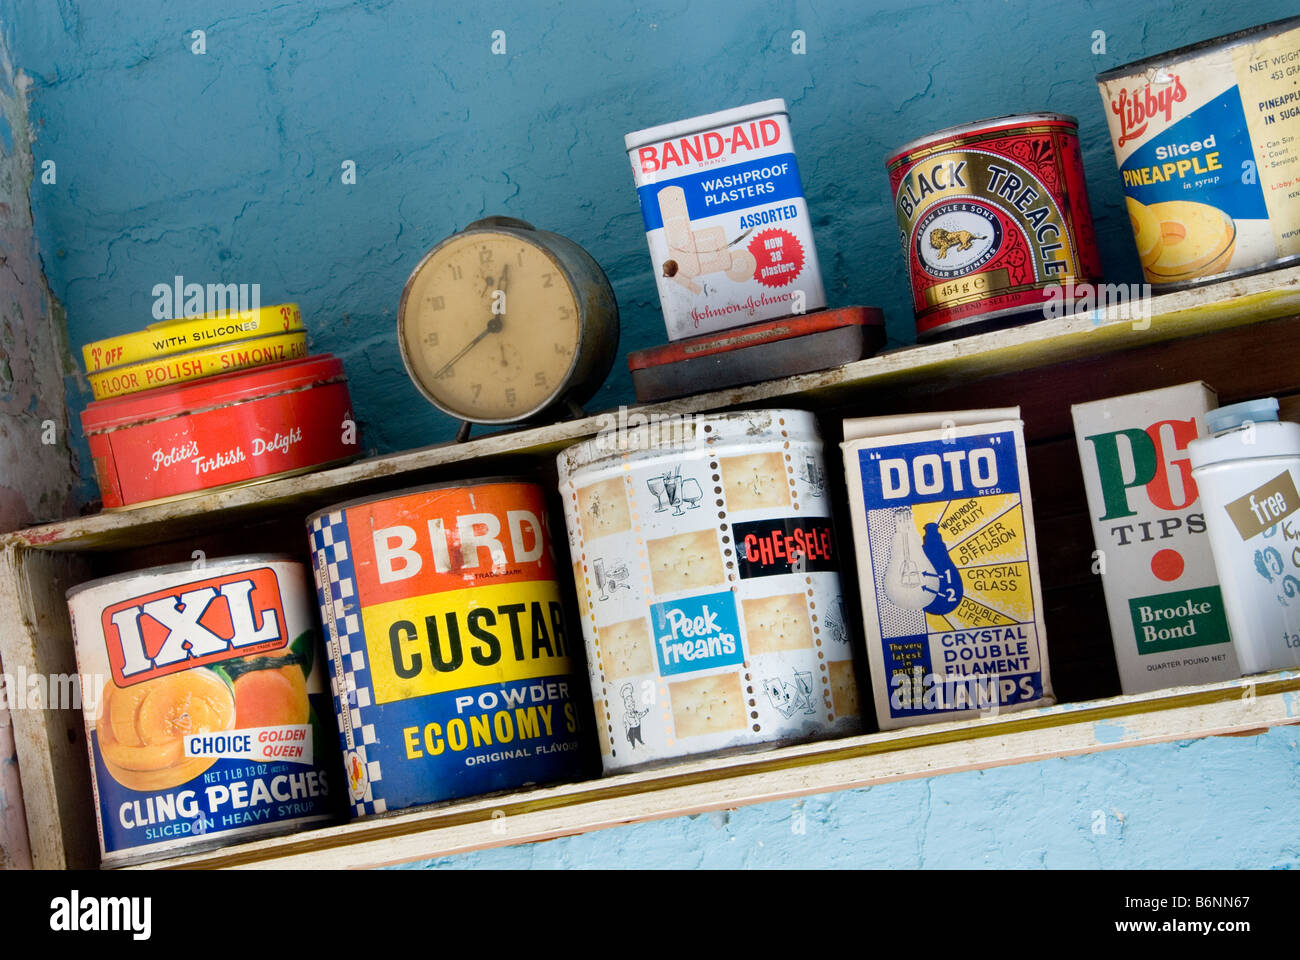 Old food packet and products from the 1970s - Stock Image